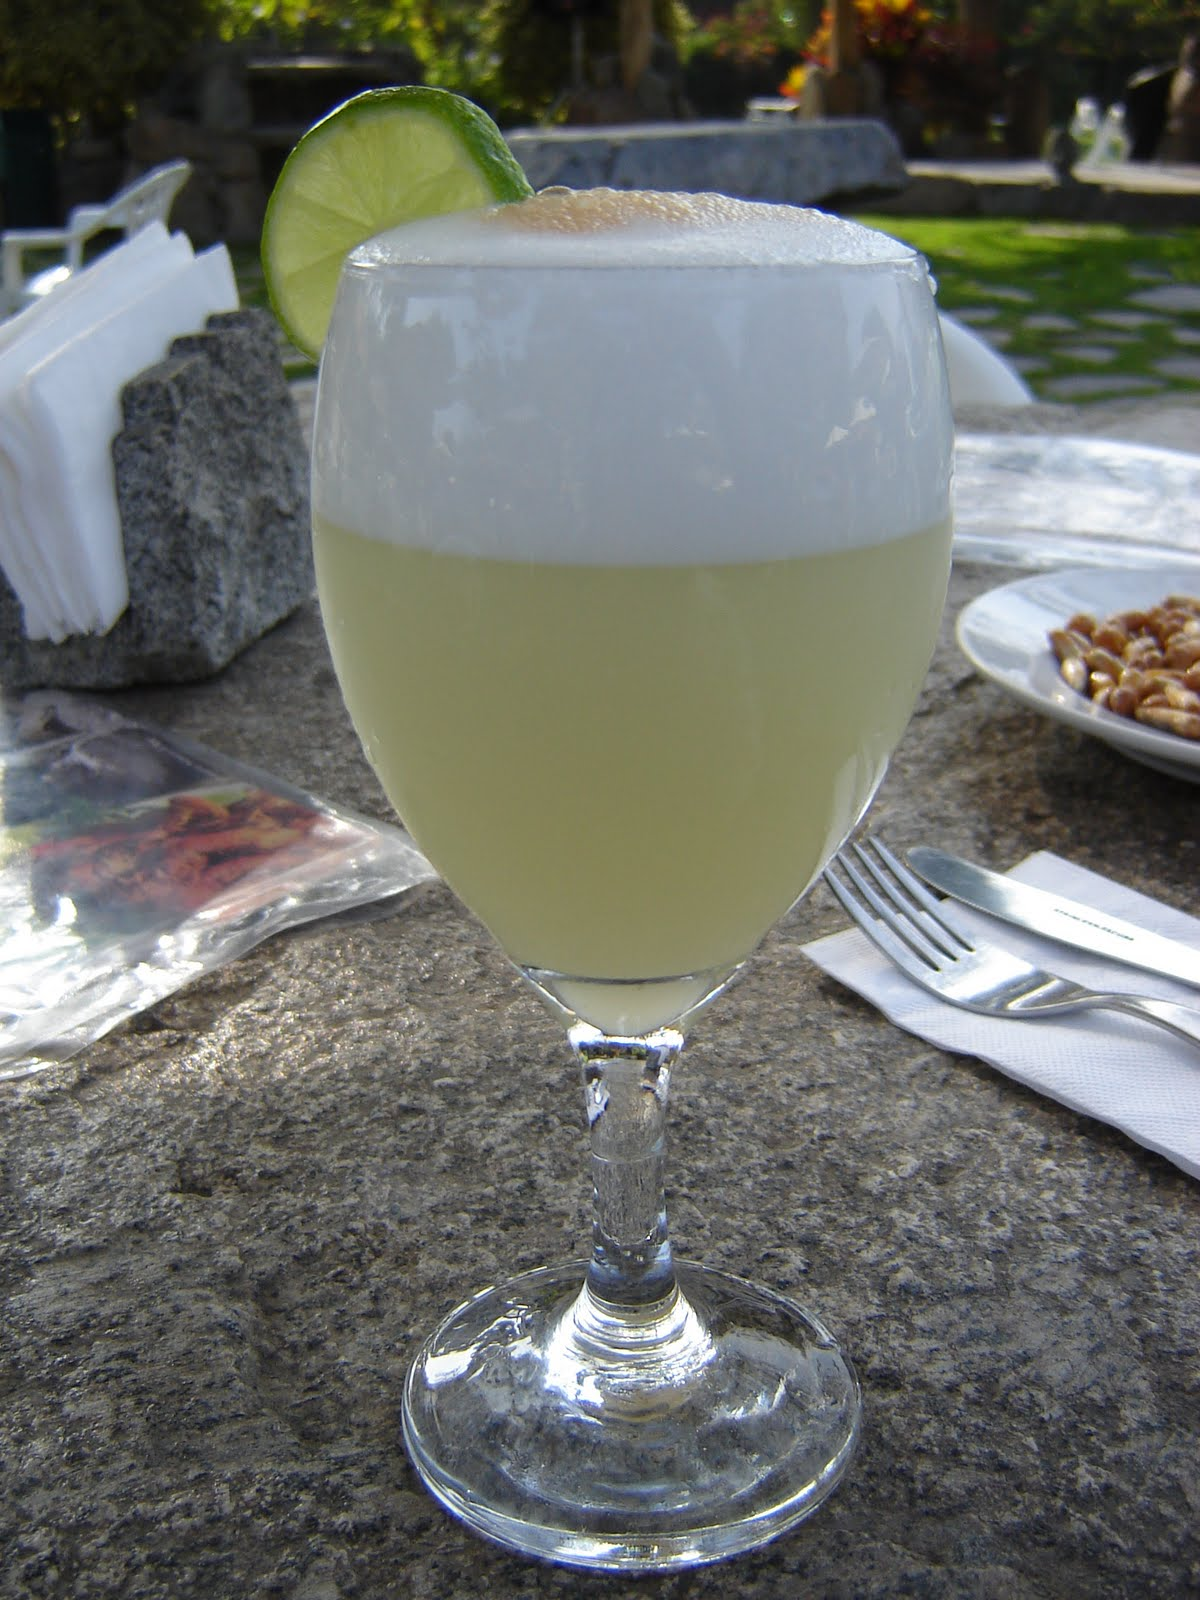 Me and My Llama: Pisco Sour